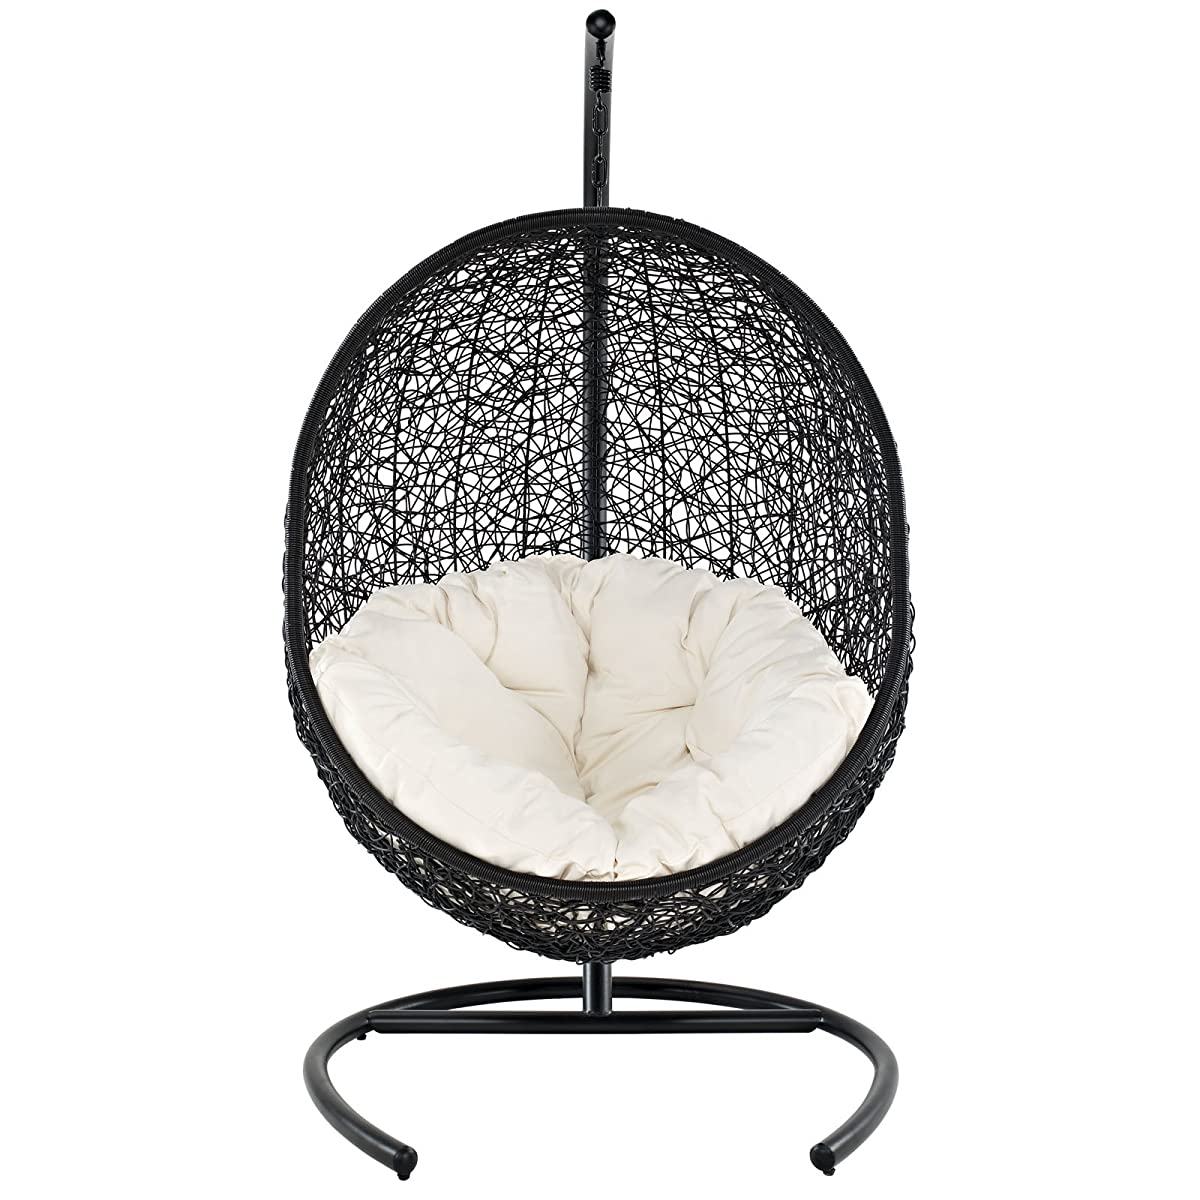 Modway Encase Rattan Outdoor Patio Swing Chair, Suspension Series